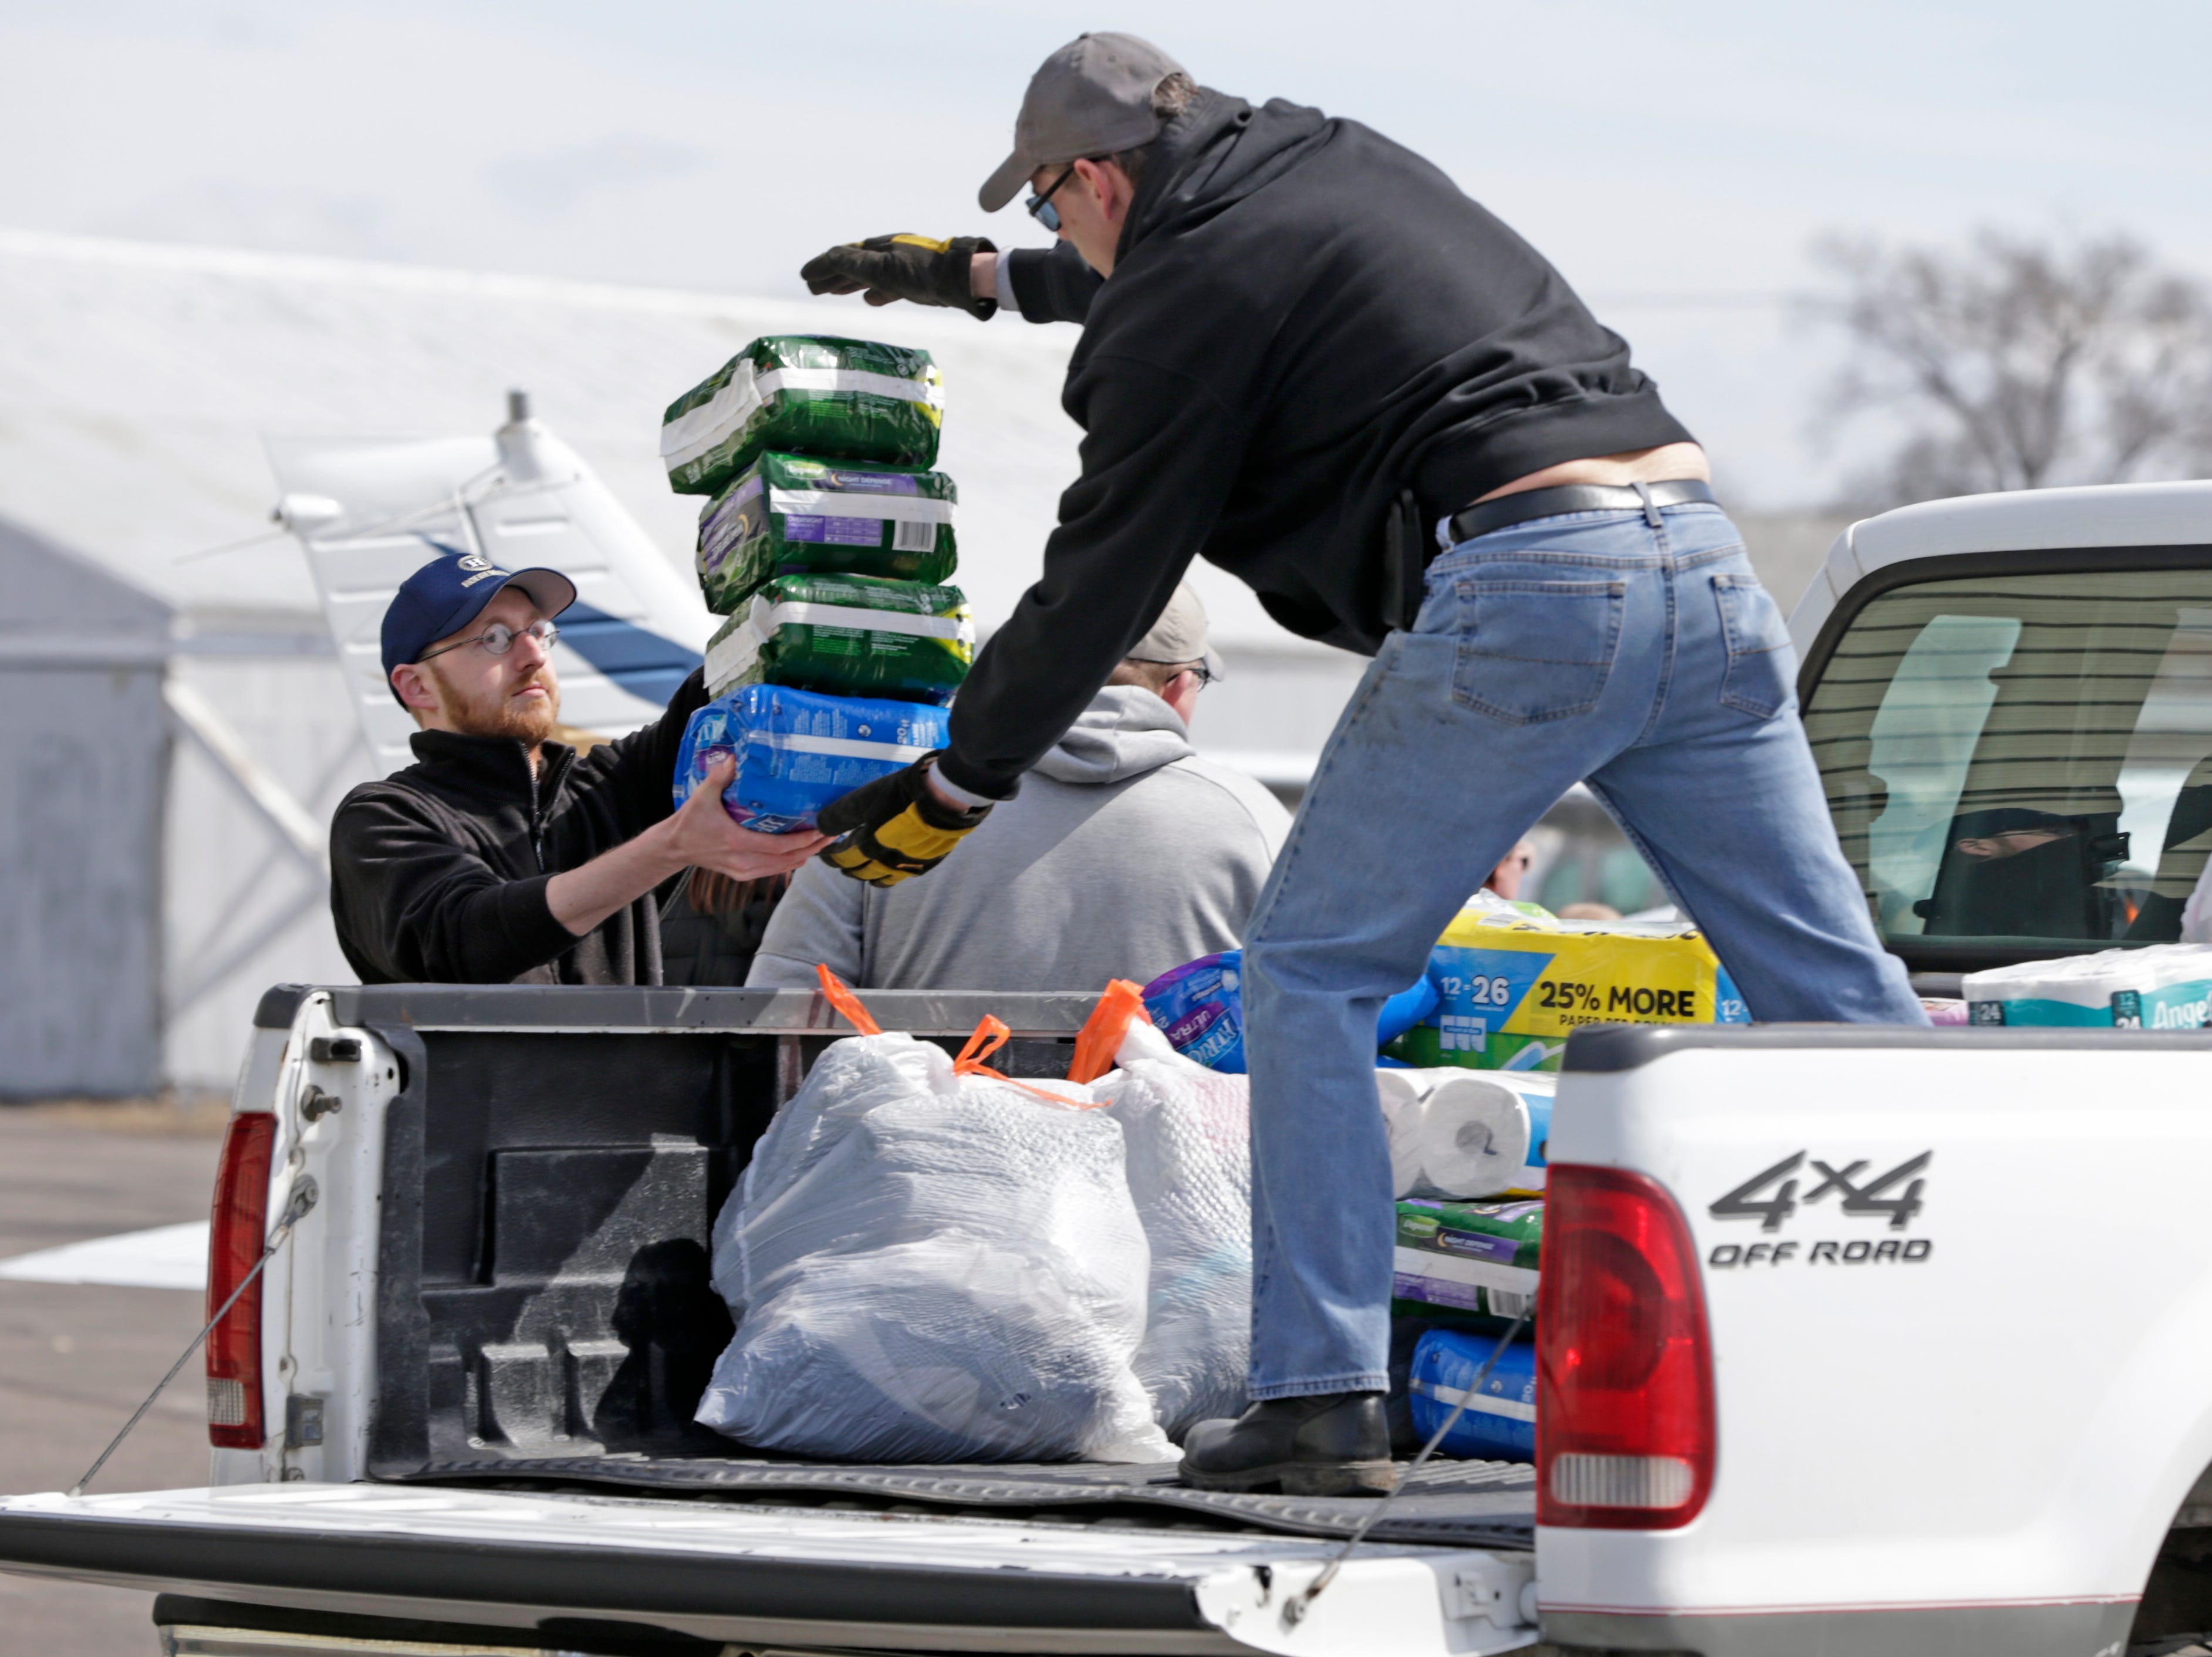 Volunteers load supplies flown in to the Fremont, Neb., airport by volunteer pilots, on March 18, 2019. Walled off by massive flooding, Fremont is getting a big lift from private pilots who are offering free flights to shuttle stranded residents to and from their hometown. Authorities say flooding from the Platte River and other waterways is so bad that just one highway lane into Fremont remains uncovered, and access to that road is severely restricted. Airport officials estimate that more than 500 people have caught flights on small aircraft flown by volunteers.